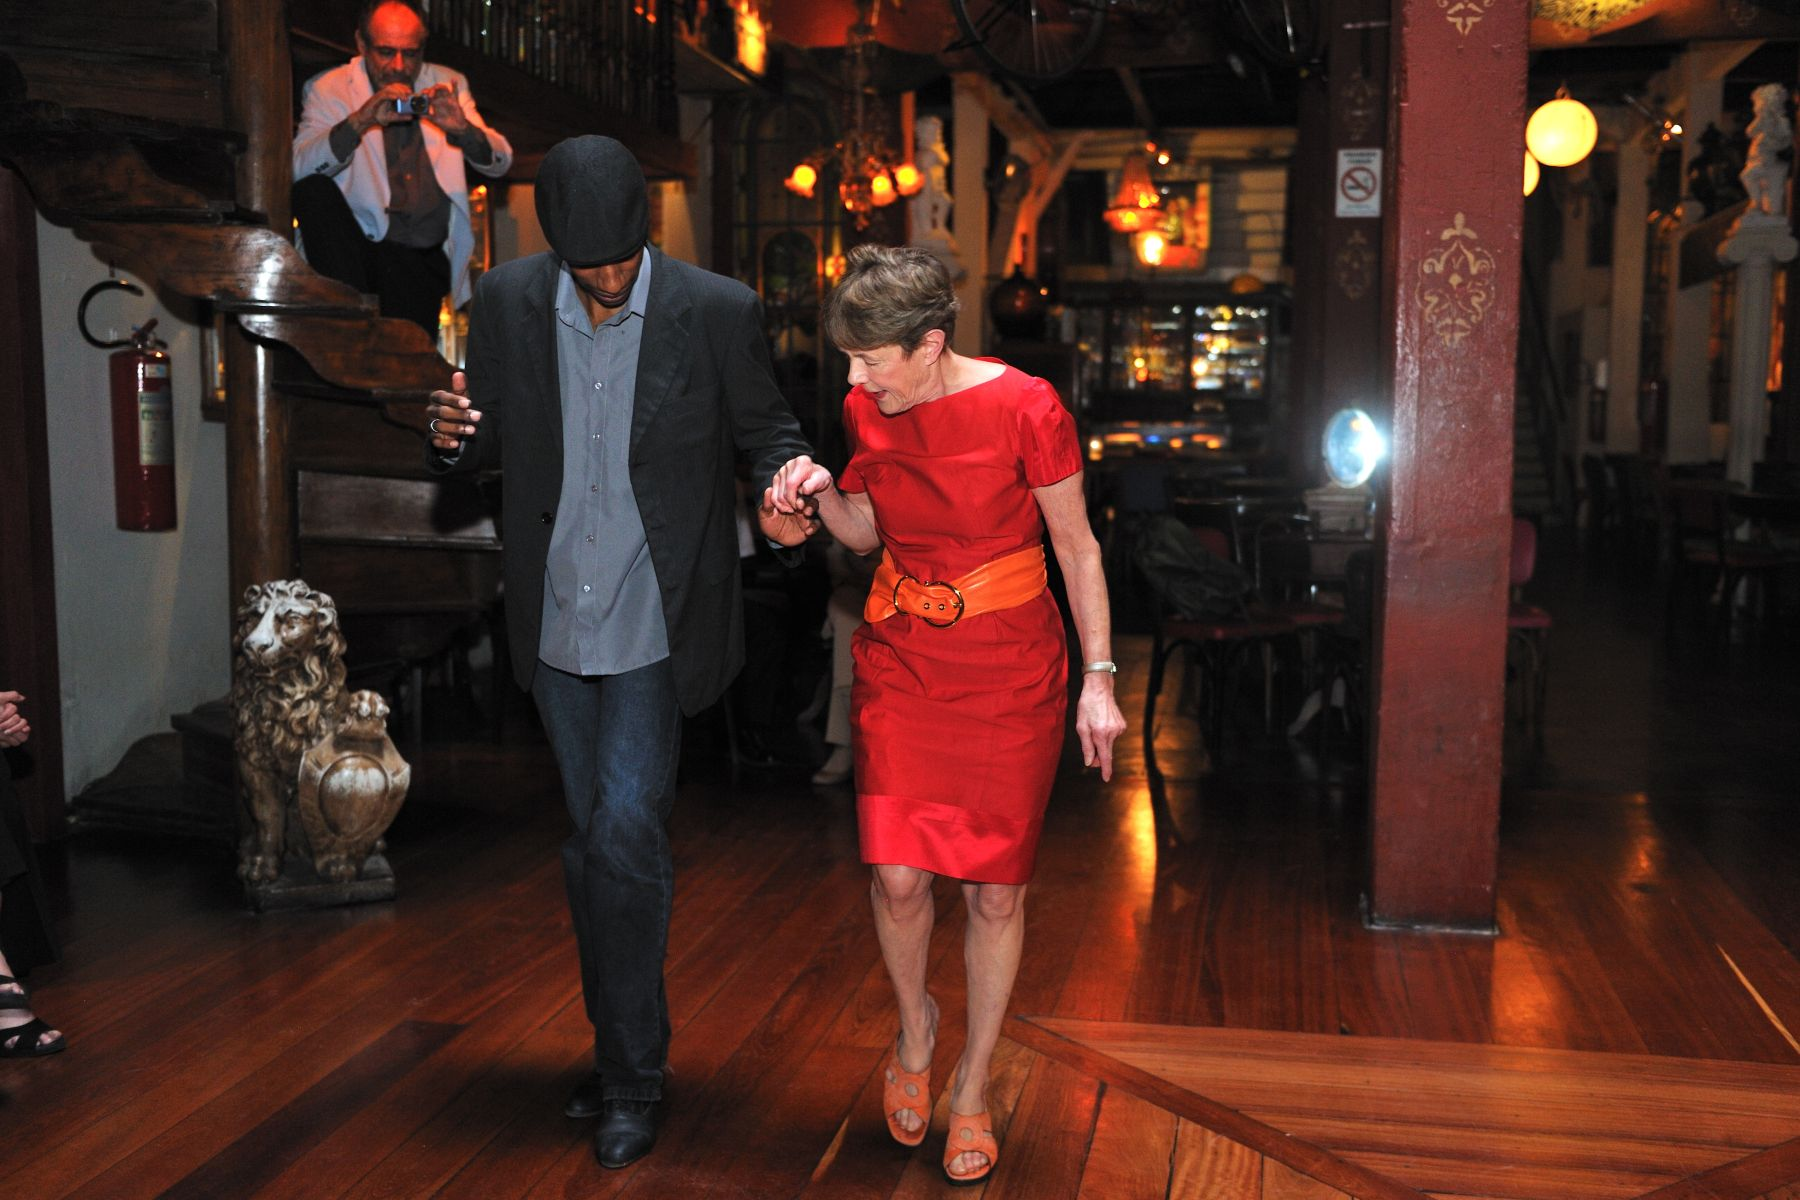 Her Excellency learned some samba moves from a dance teacher...